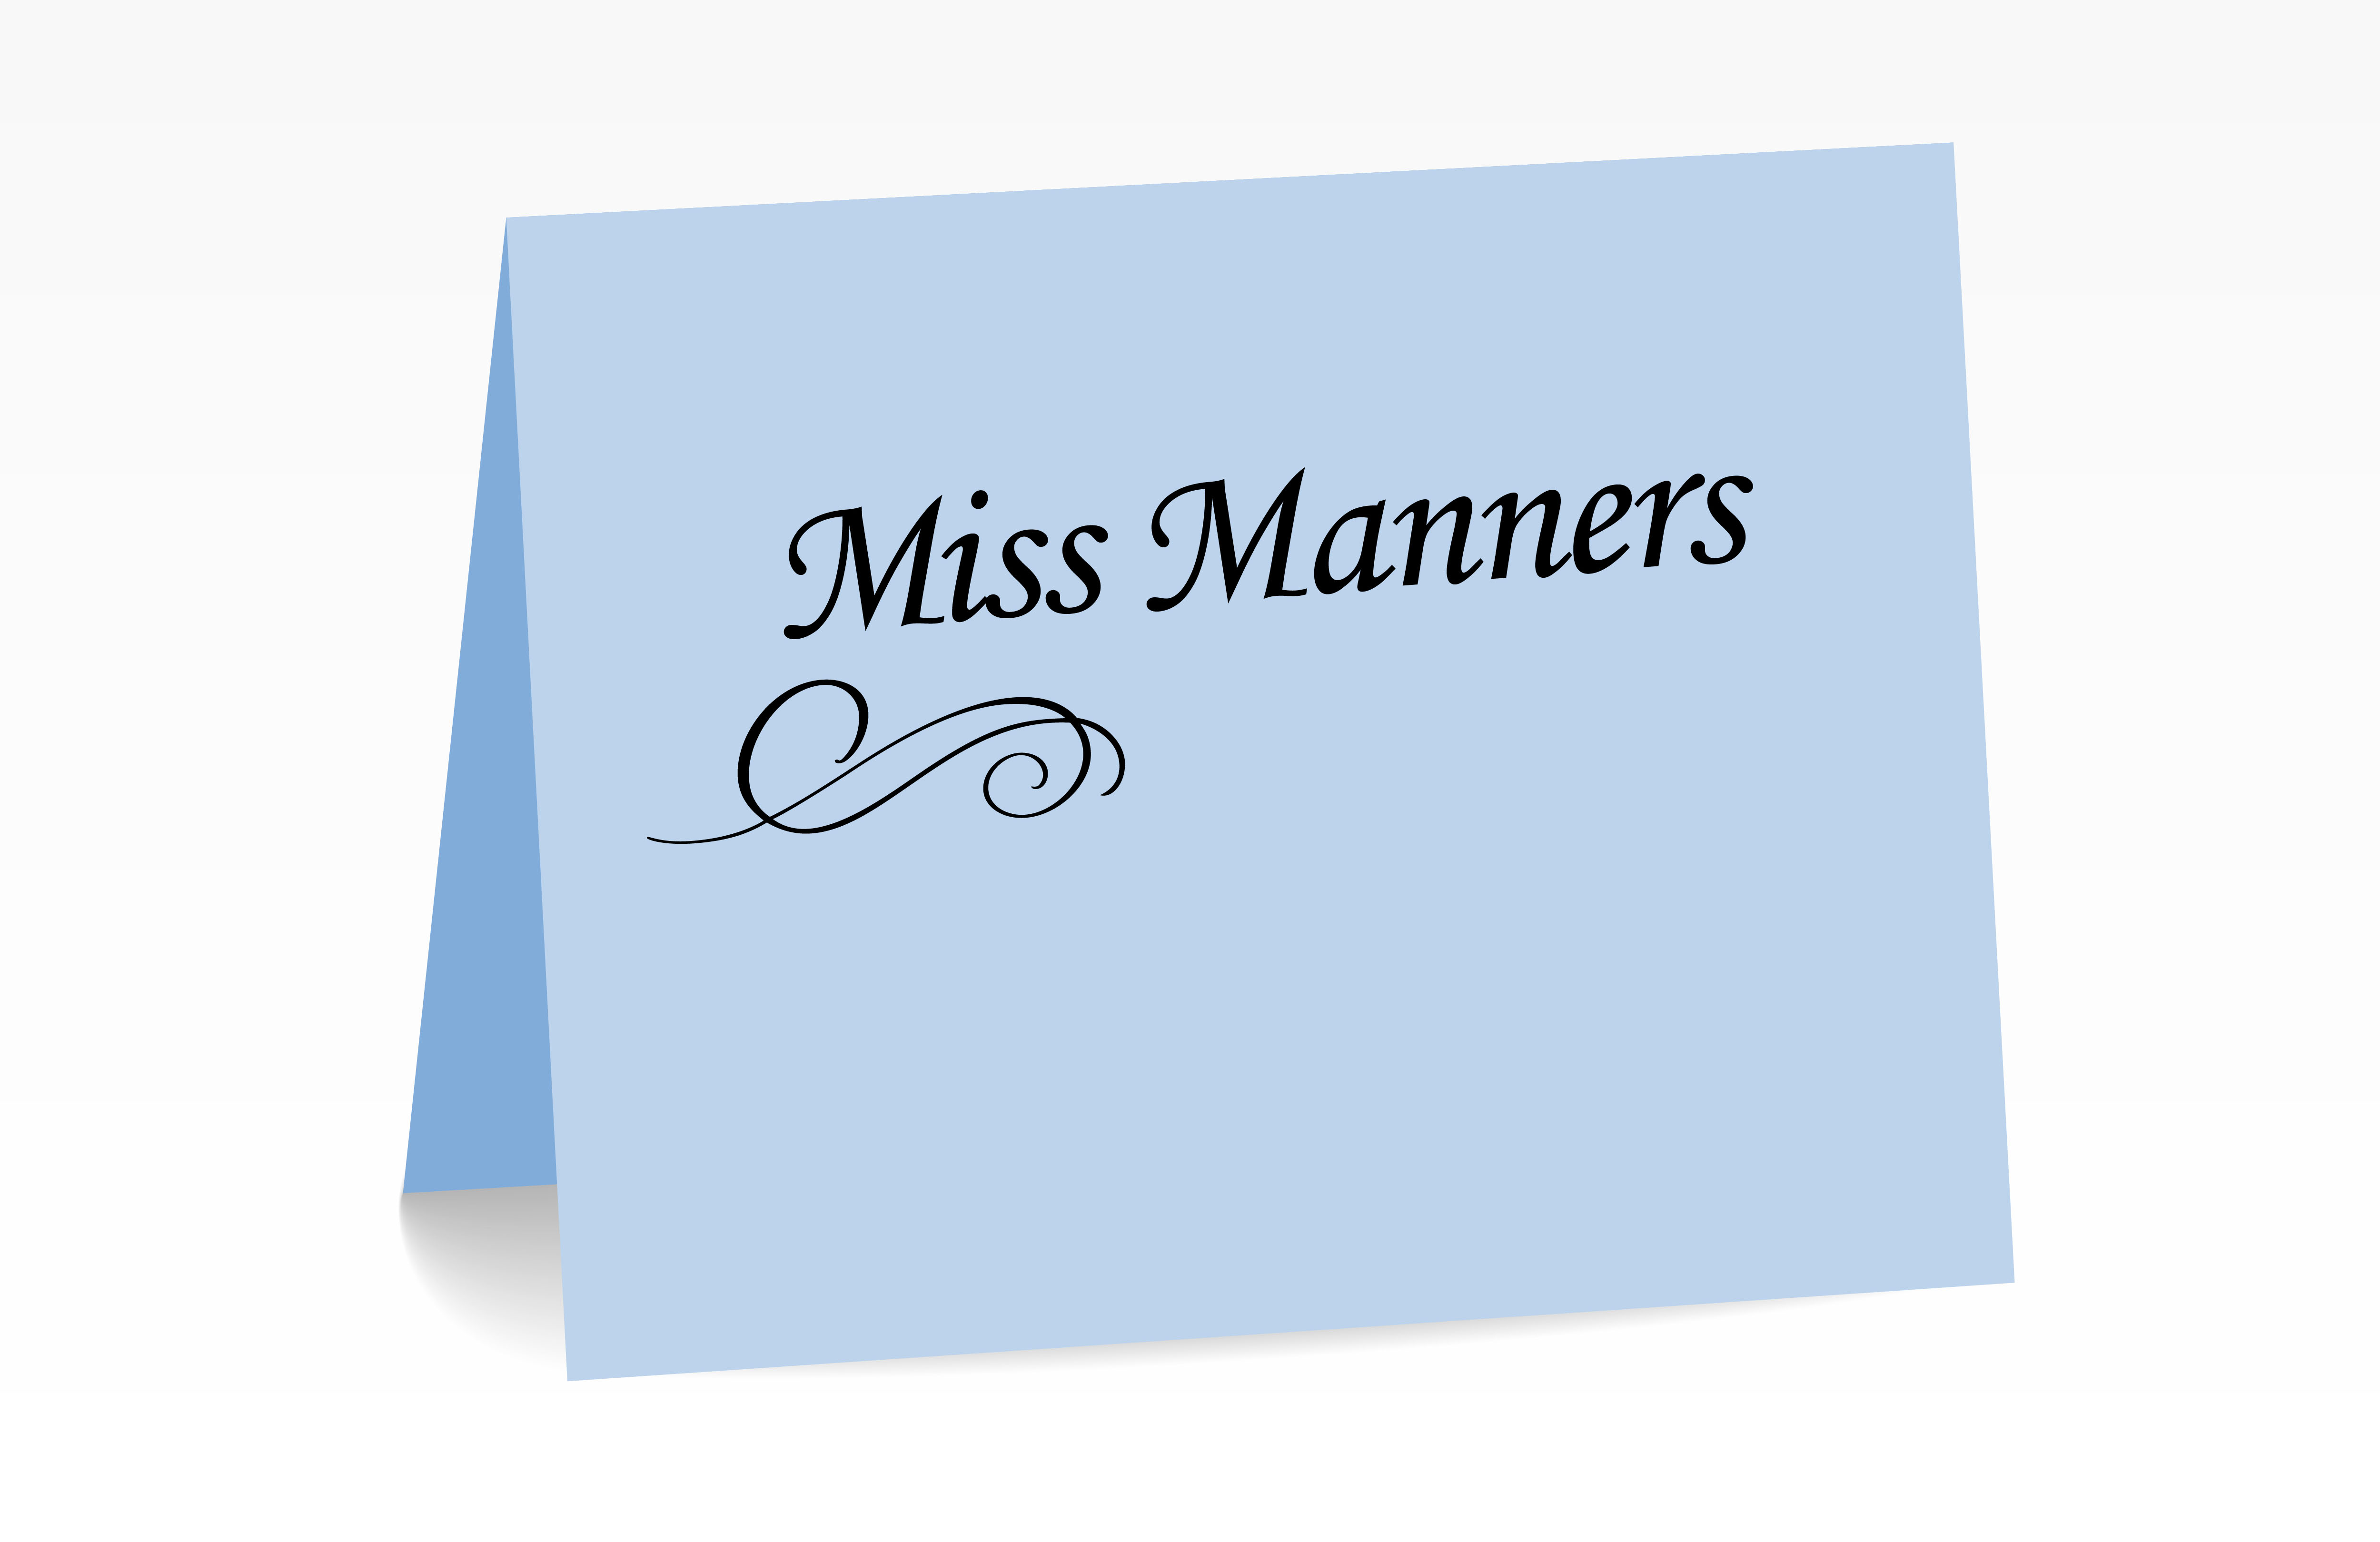 Miss Manners: How long must lunch date wait? - The